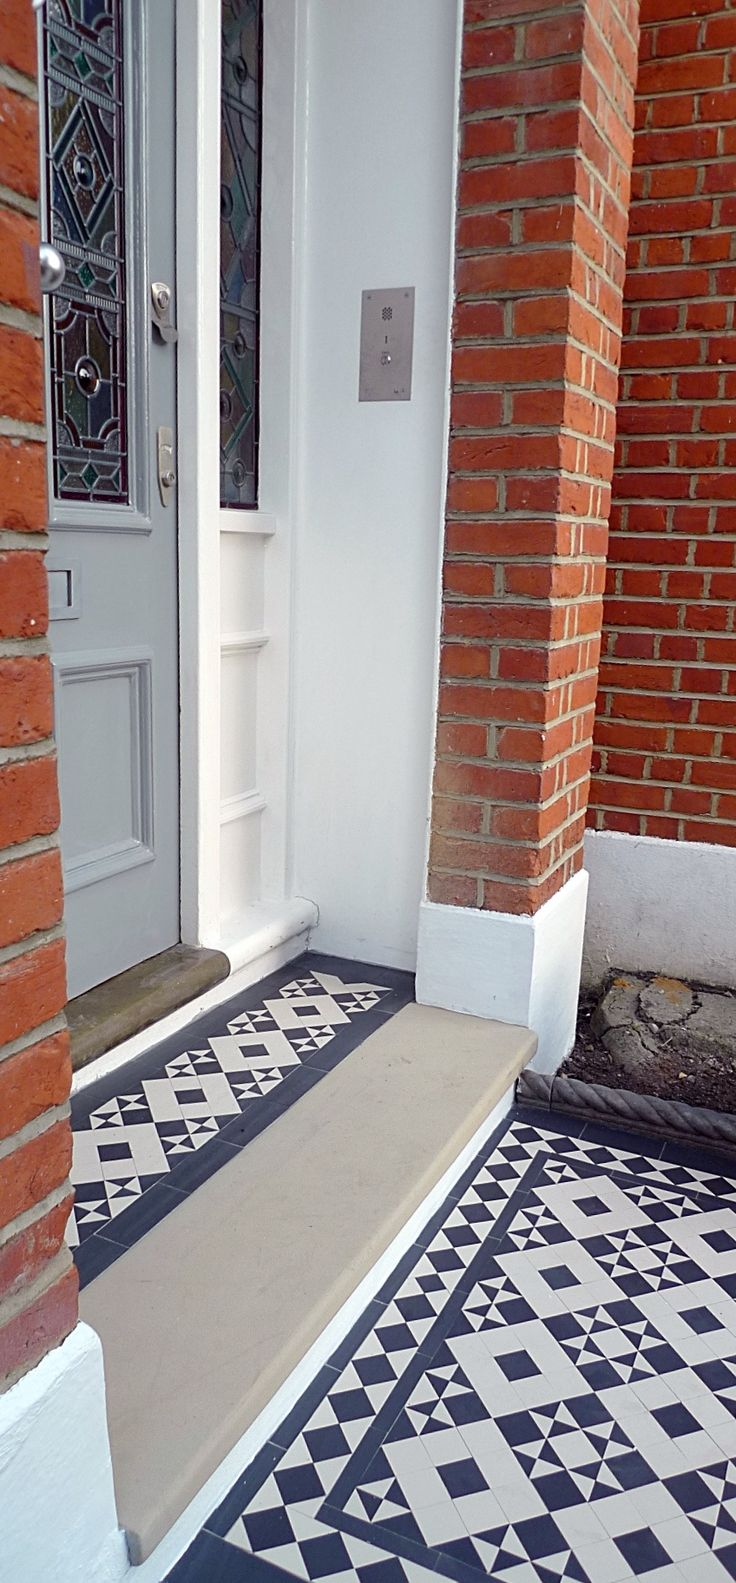 Best 25 victorian tiles ideas on pinterest victorian hallway black and white victorian reproduction mosaic tile path battersea york stone rope edge buxus london front dailygadgetfo Choice Image